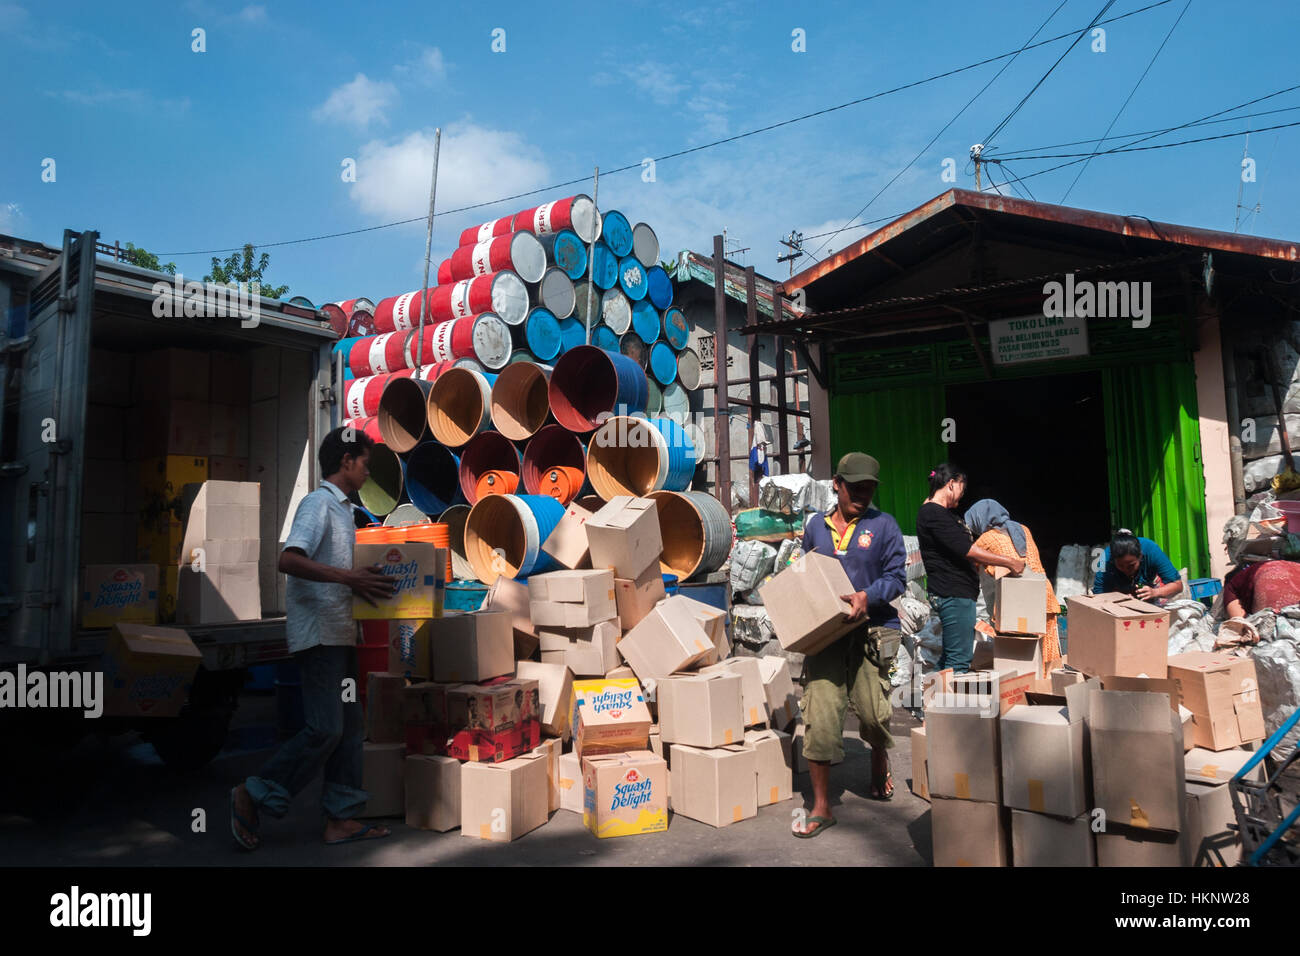 Workers activity in a reseller's storage of used packaging items in Surabaya, Indonesia. - Stock Image